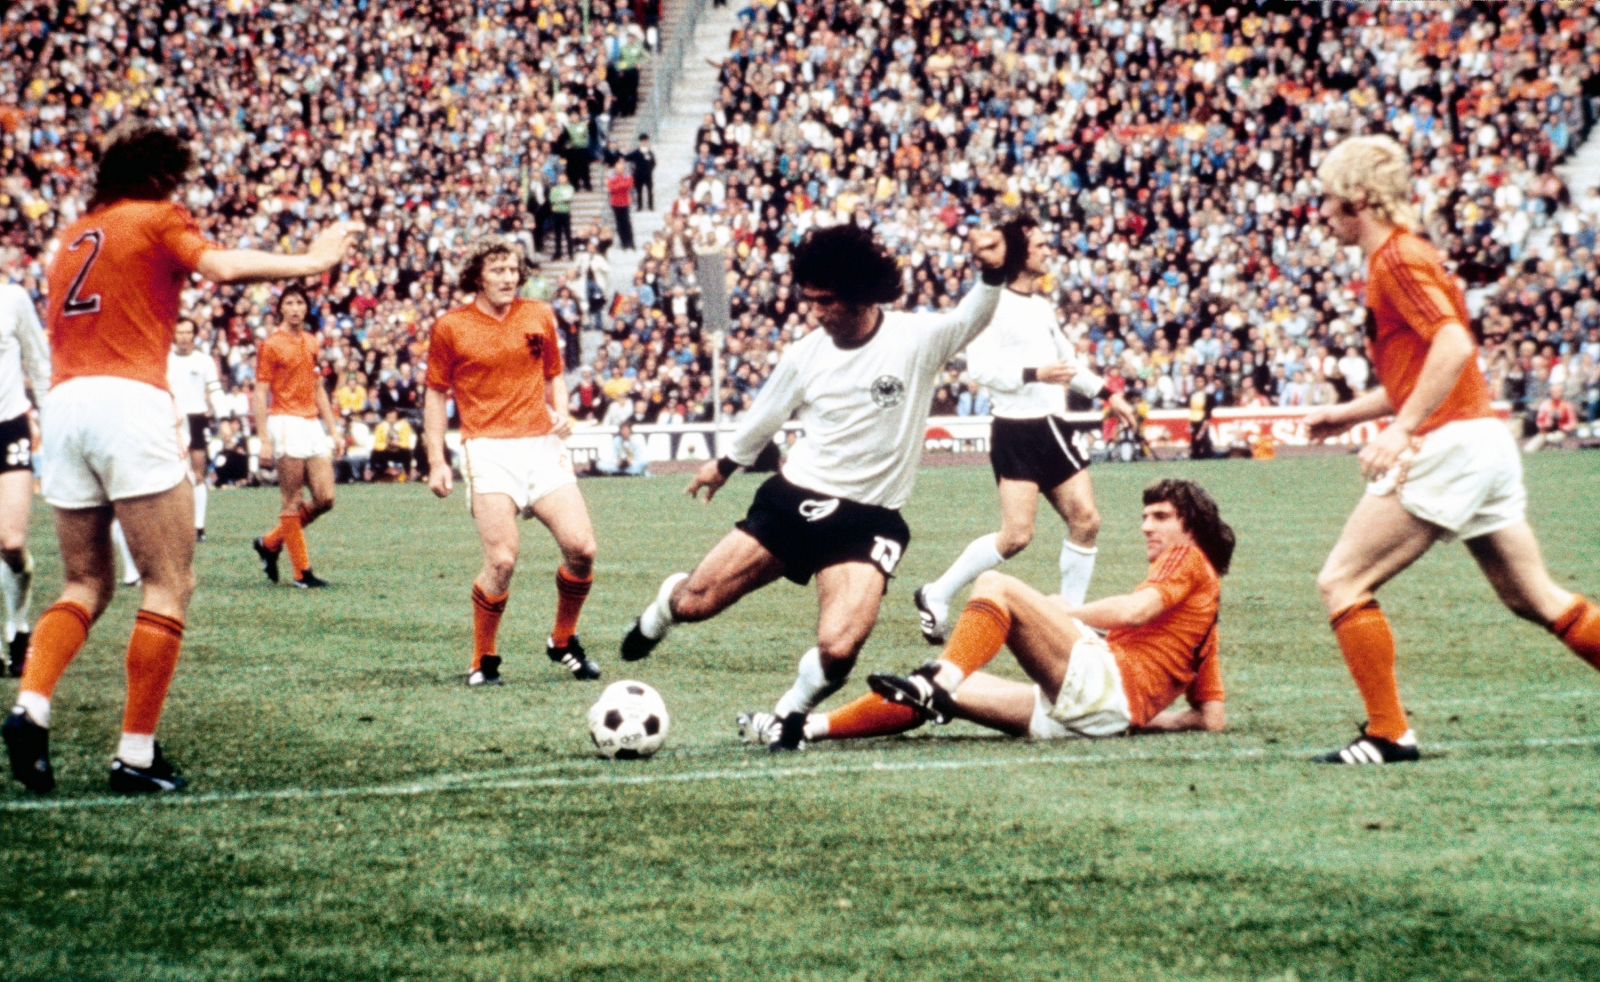 How Gerd Müller's 1971/72 season propelled him to greatness